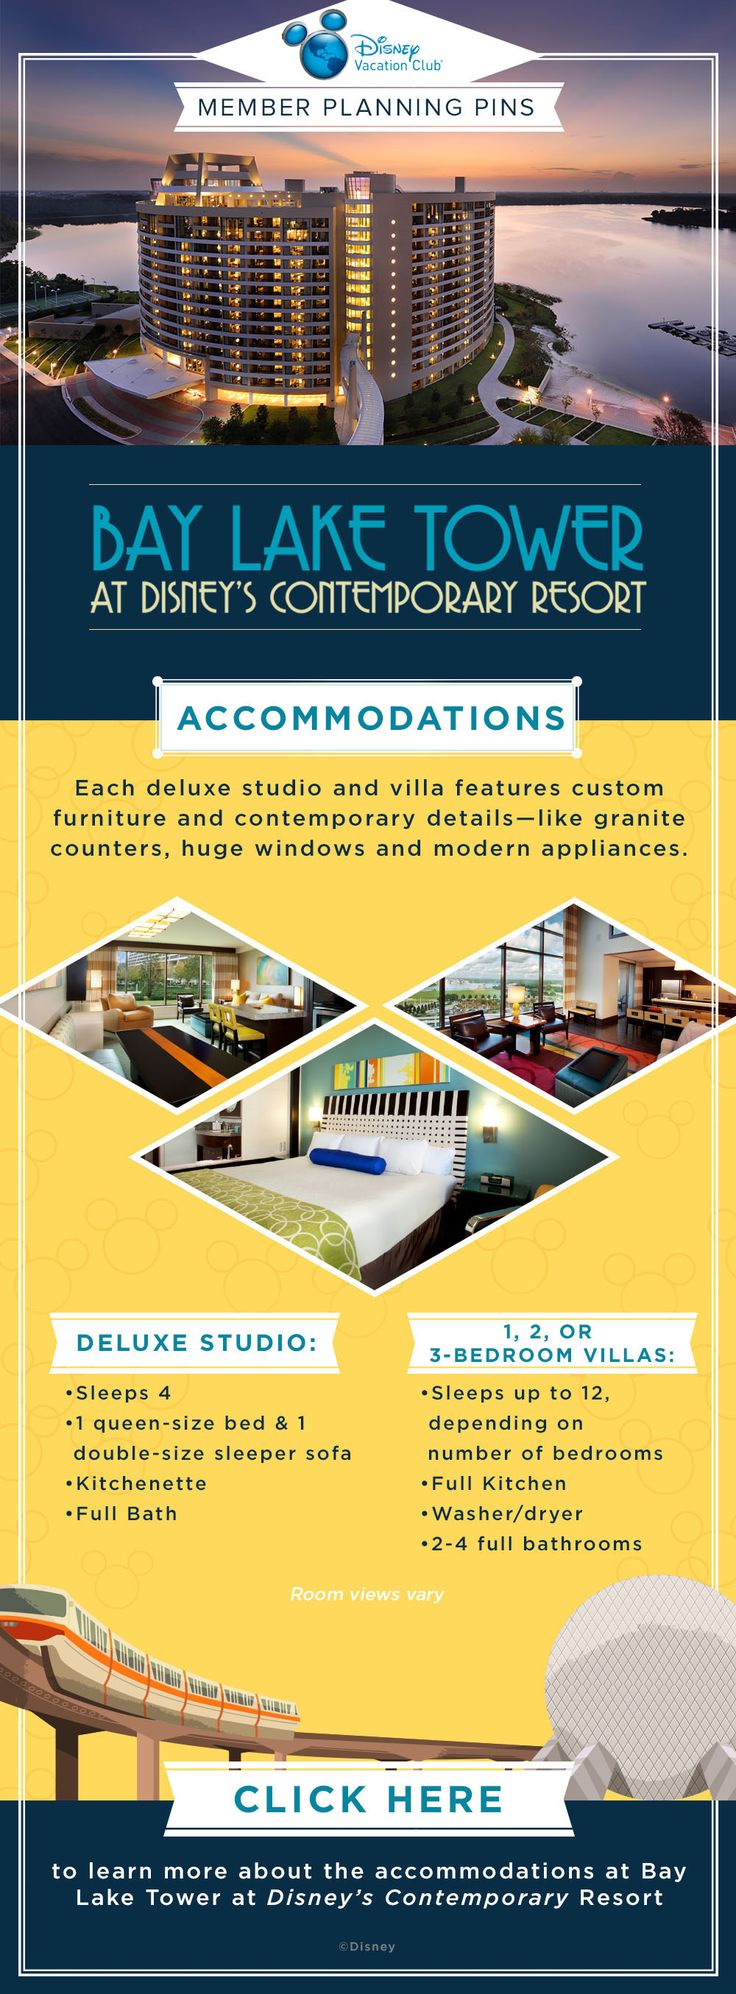 Plan your next Disney Vacation Club vacation to Bay Lake Tower at Disney's Contemporary Resort with our helpful Member Planning Pin showing an overview of what's available at the Resort! Did you know that there are Deluxe Studios and 1, 2 or 3 bedroom villas available at this Resort? Click to learn more!